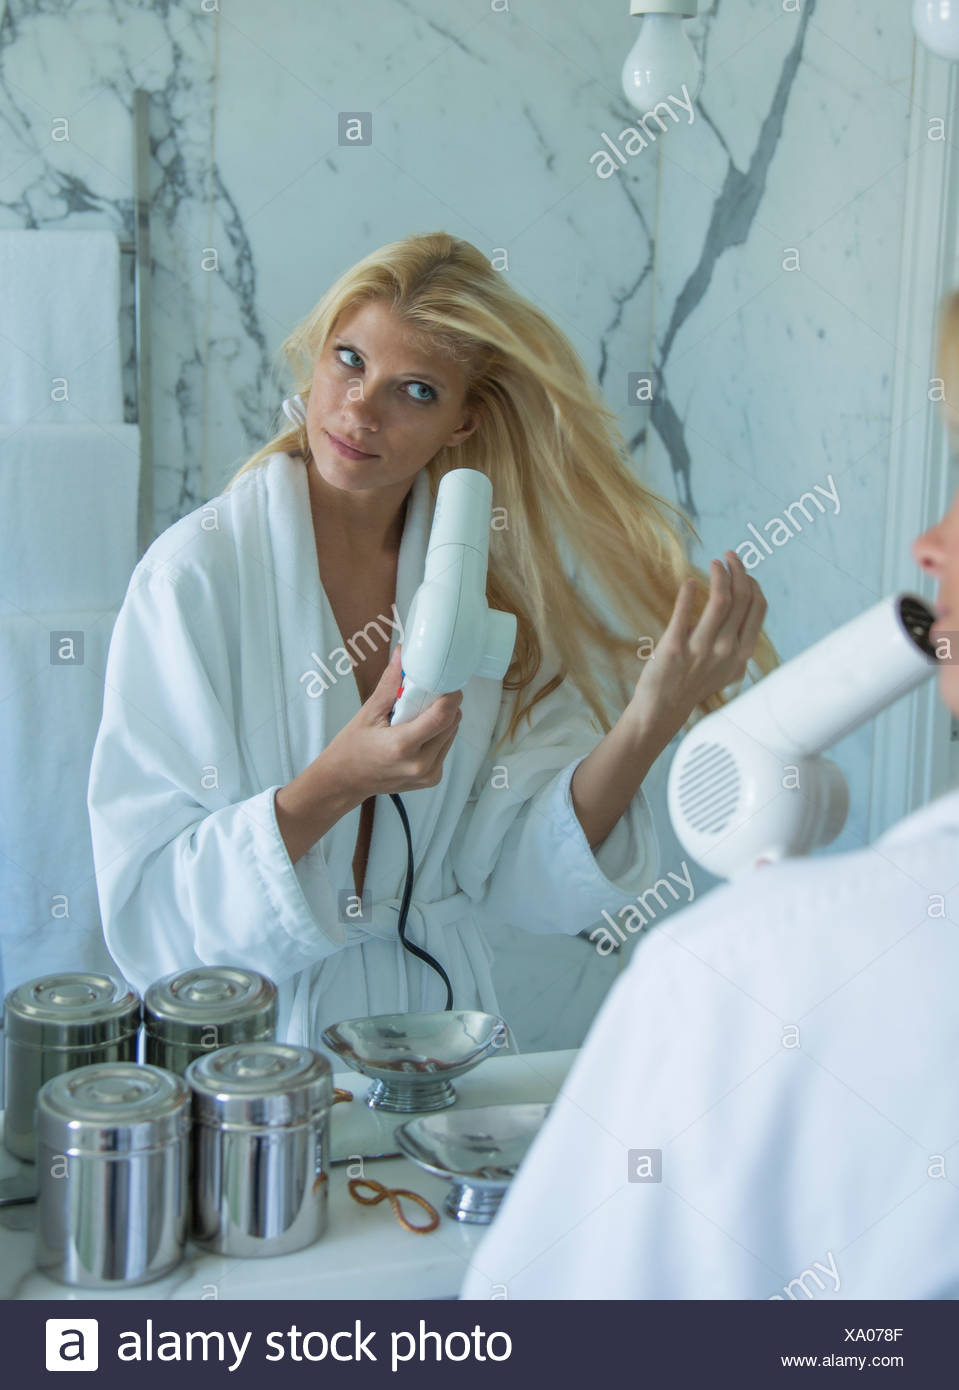 Woman blow drying her hair in bathroom - Stock Image